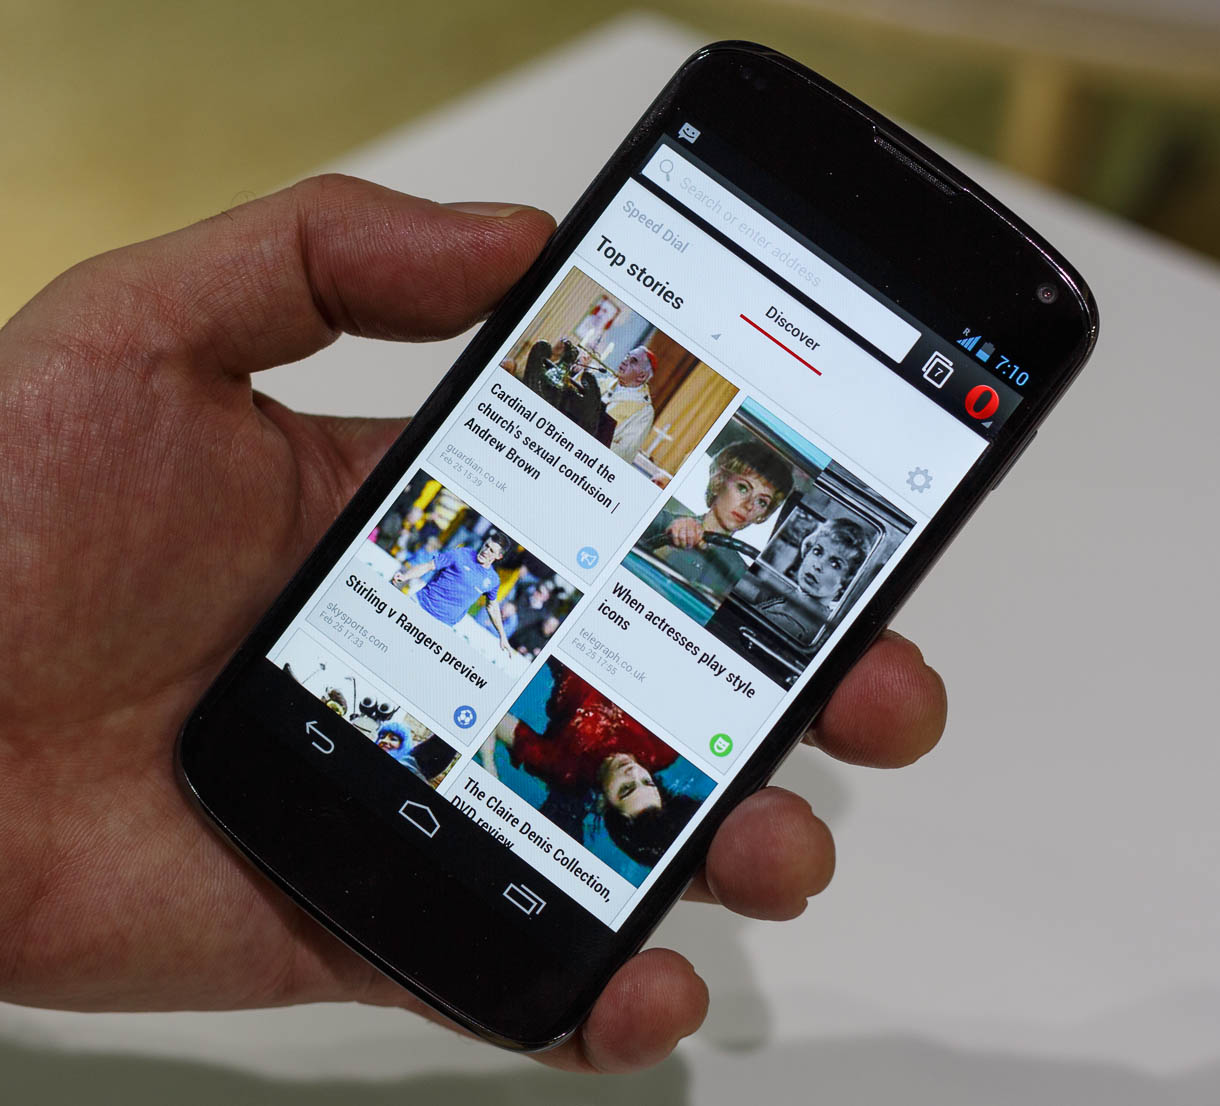 Discovery mode in Opera for Android